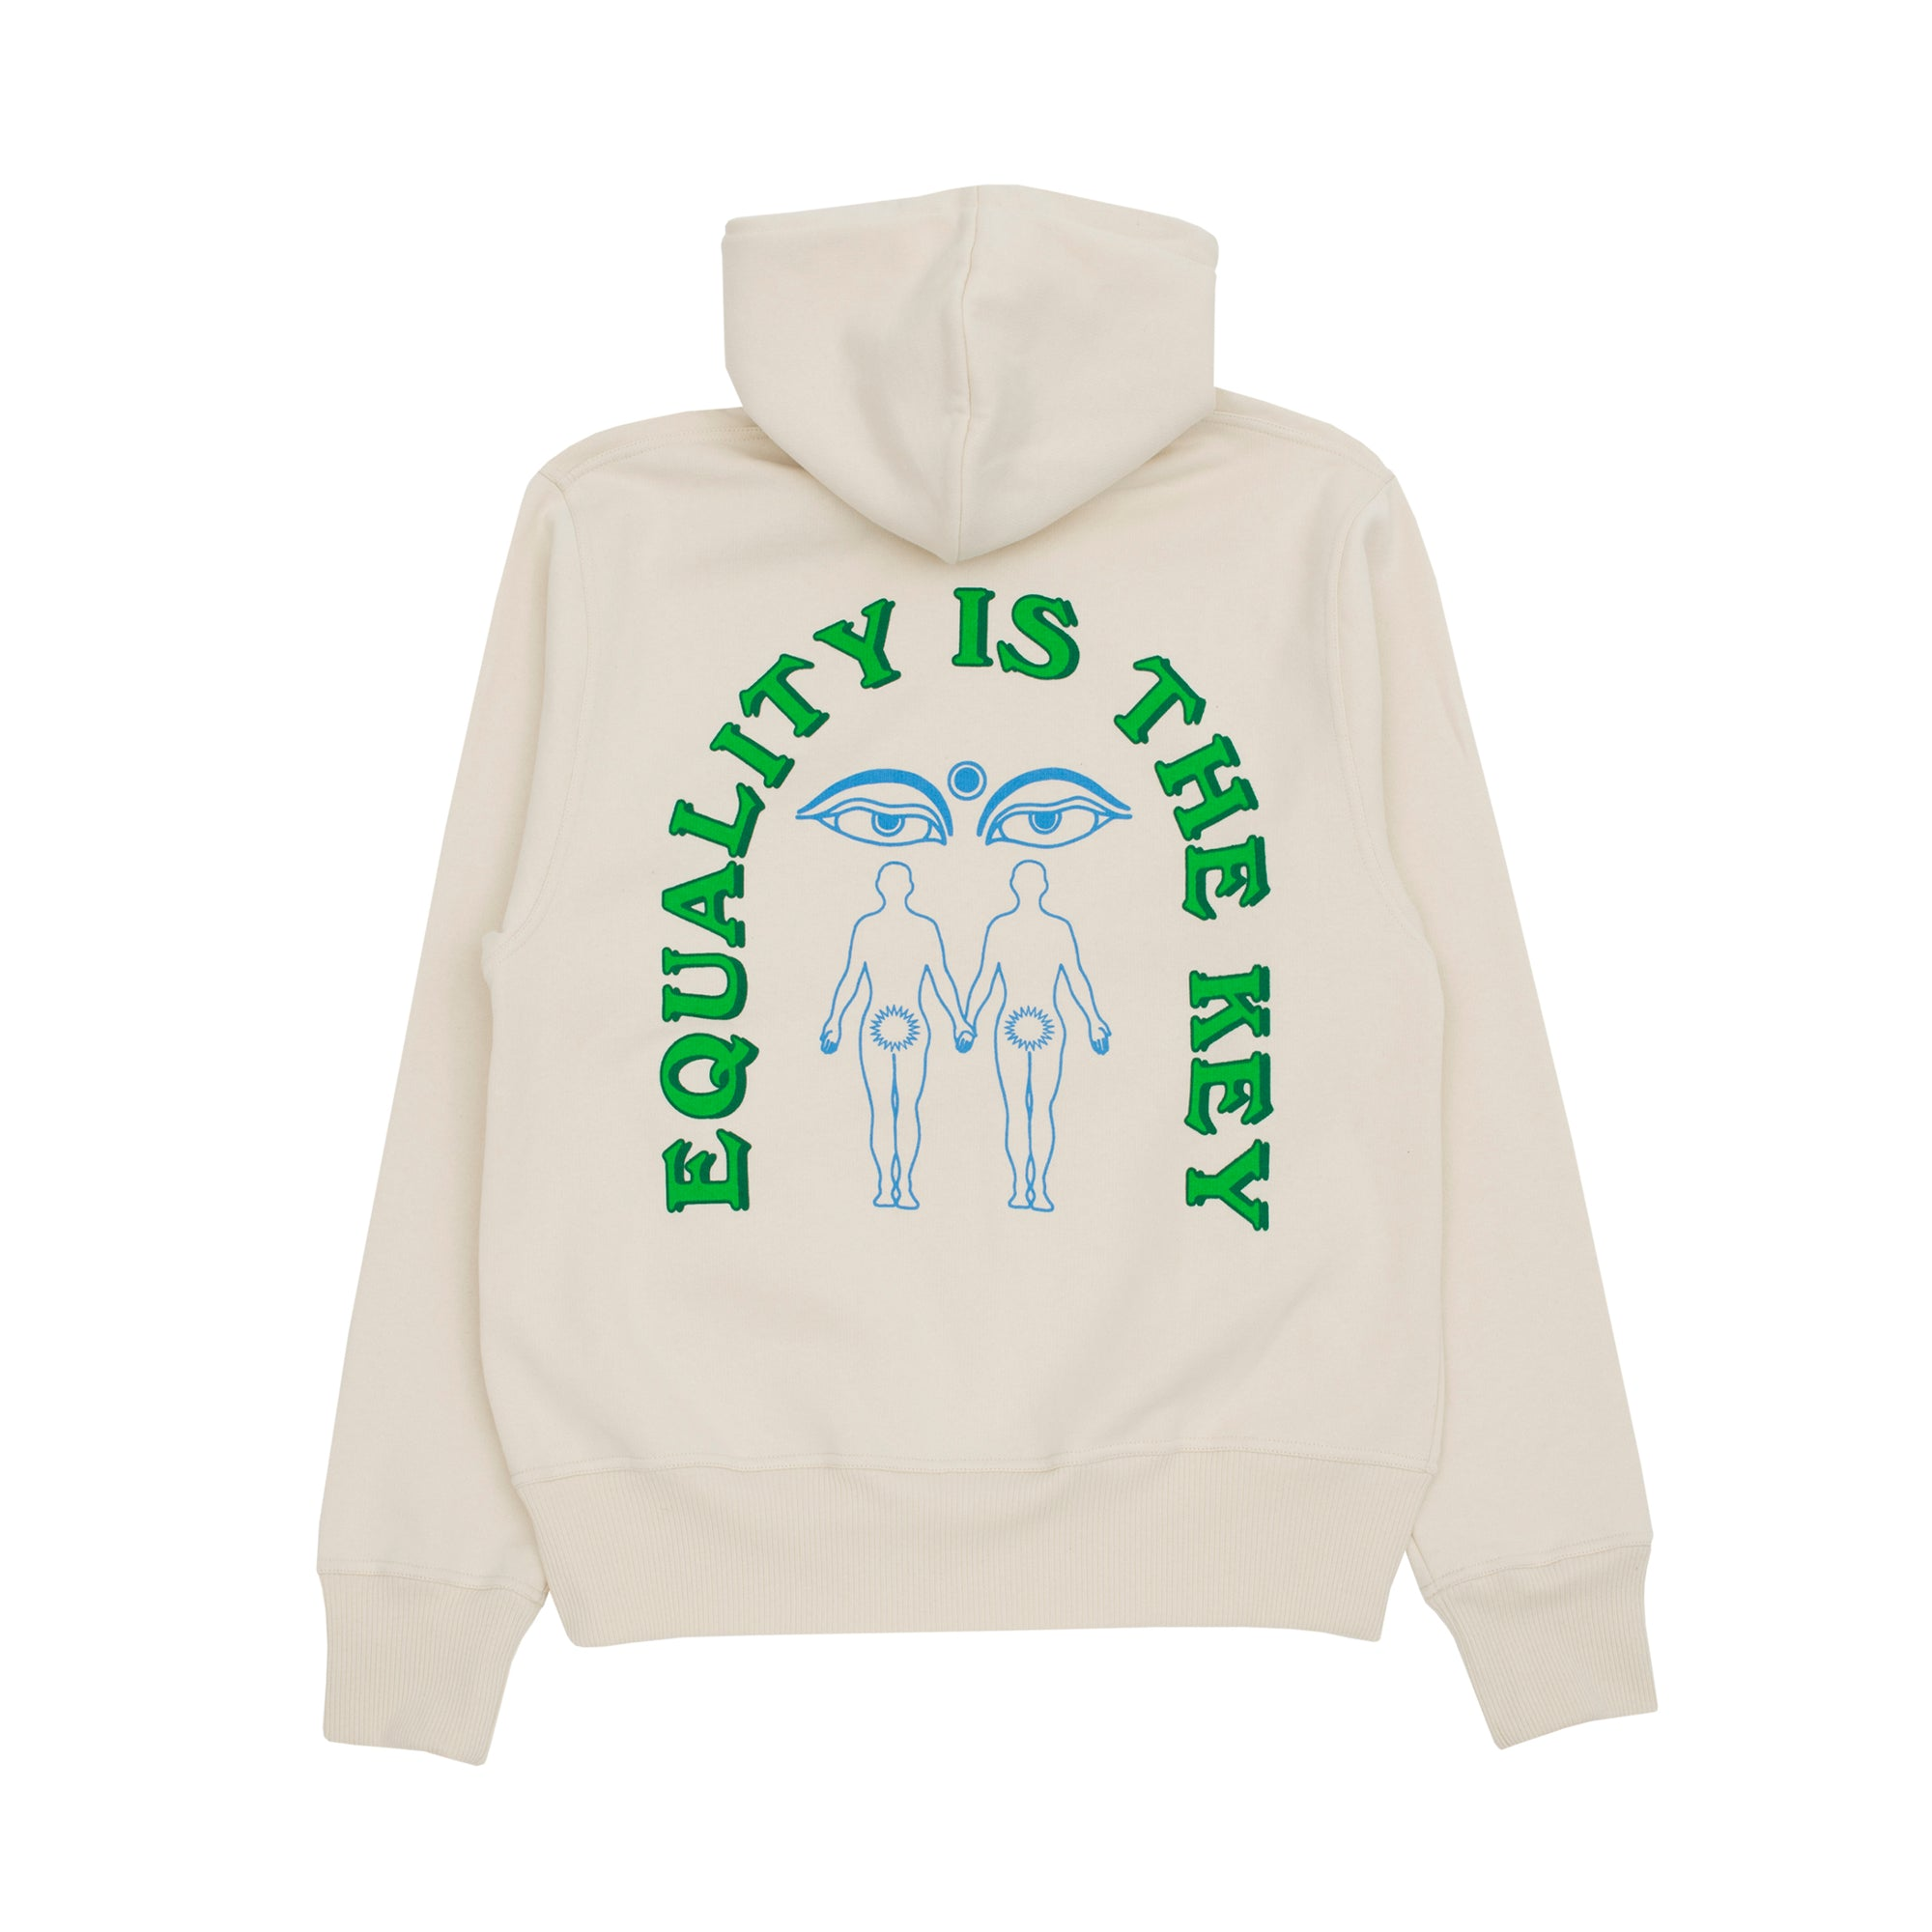 Carne Bollente Equality Is The Key Hoodie: Beige - The Union Project